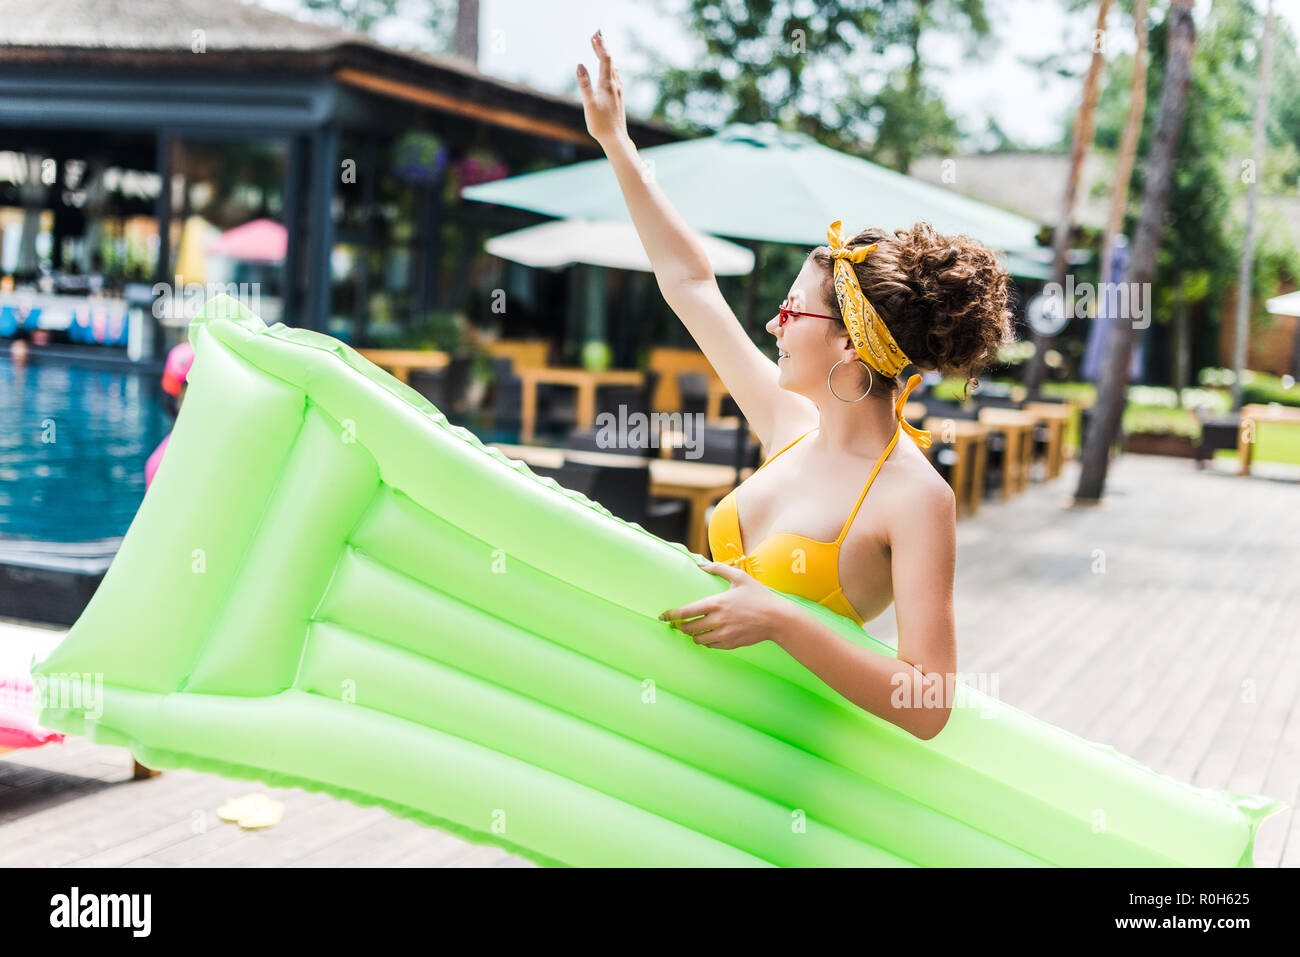 girl in swimsuit walking with inflatable mattress near swimming pool and waving hand - Stock Image